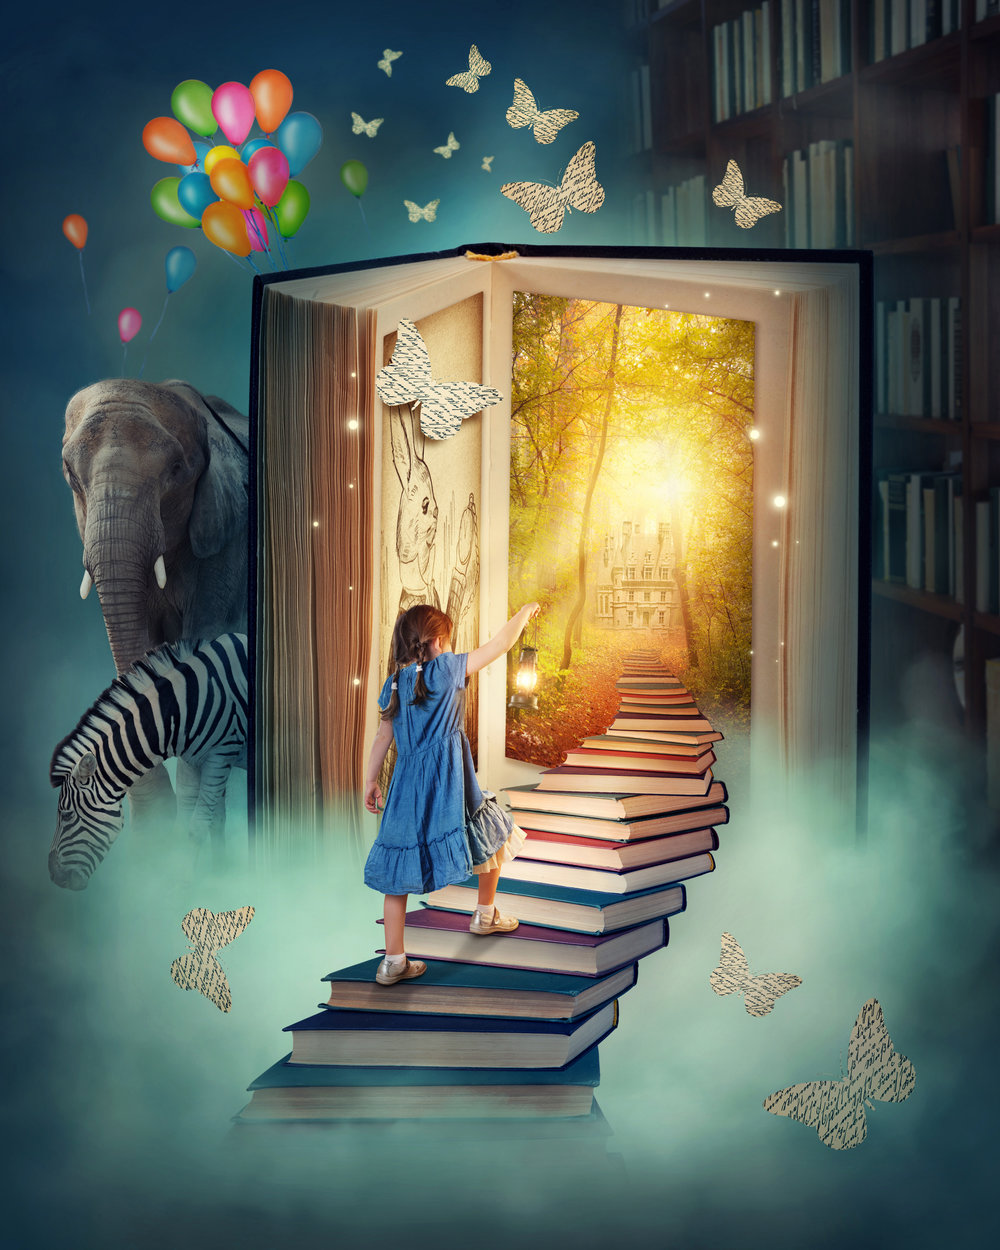 Shutterstock image - (https://www.shutterstock.com/image-photo/little-girl-walking-stairs-magic-book-124521184?src=JGWOTJssCqOKGms0dsDq9Q-1-12)